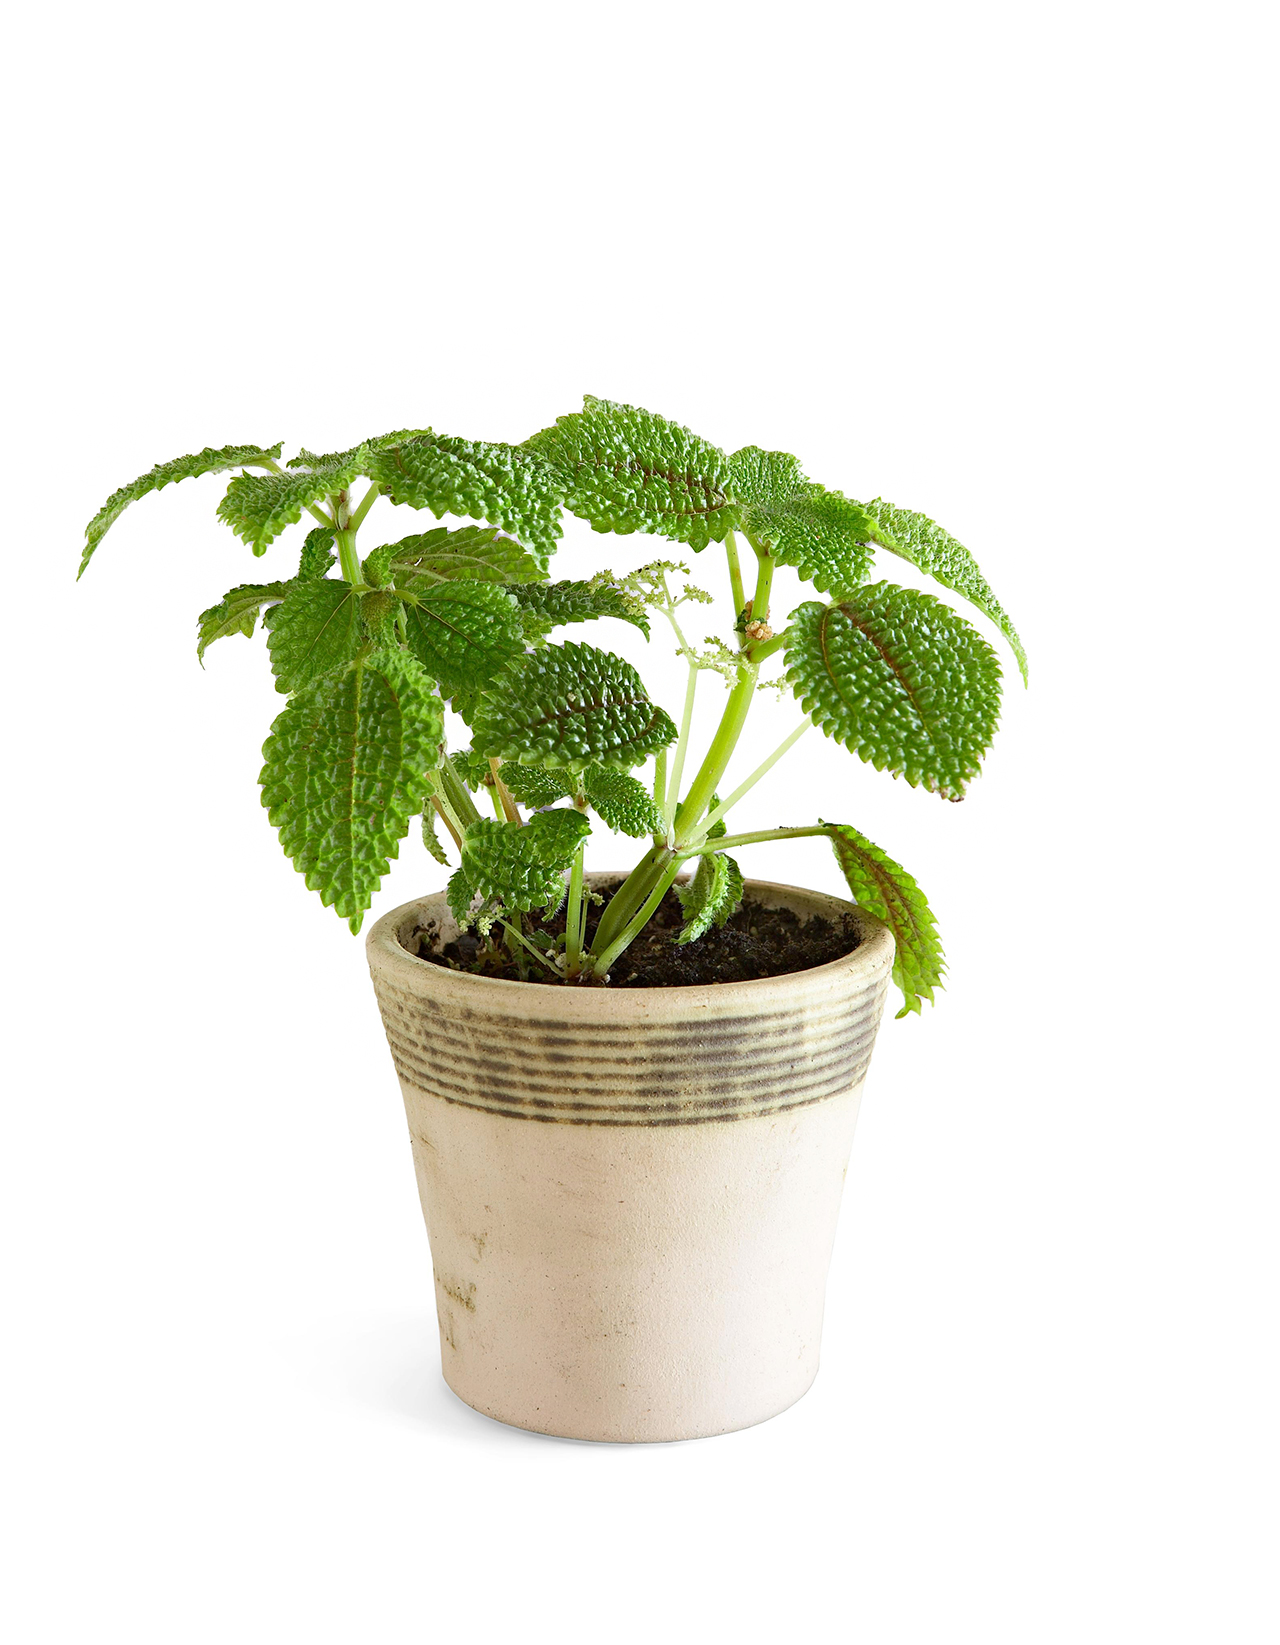 Friendship plant in a pot